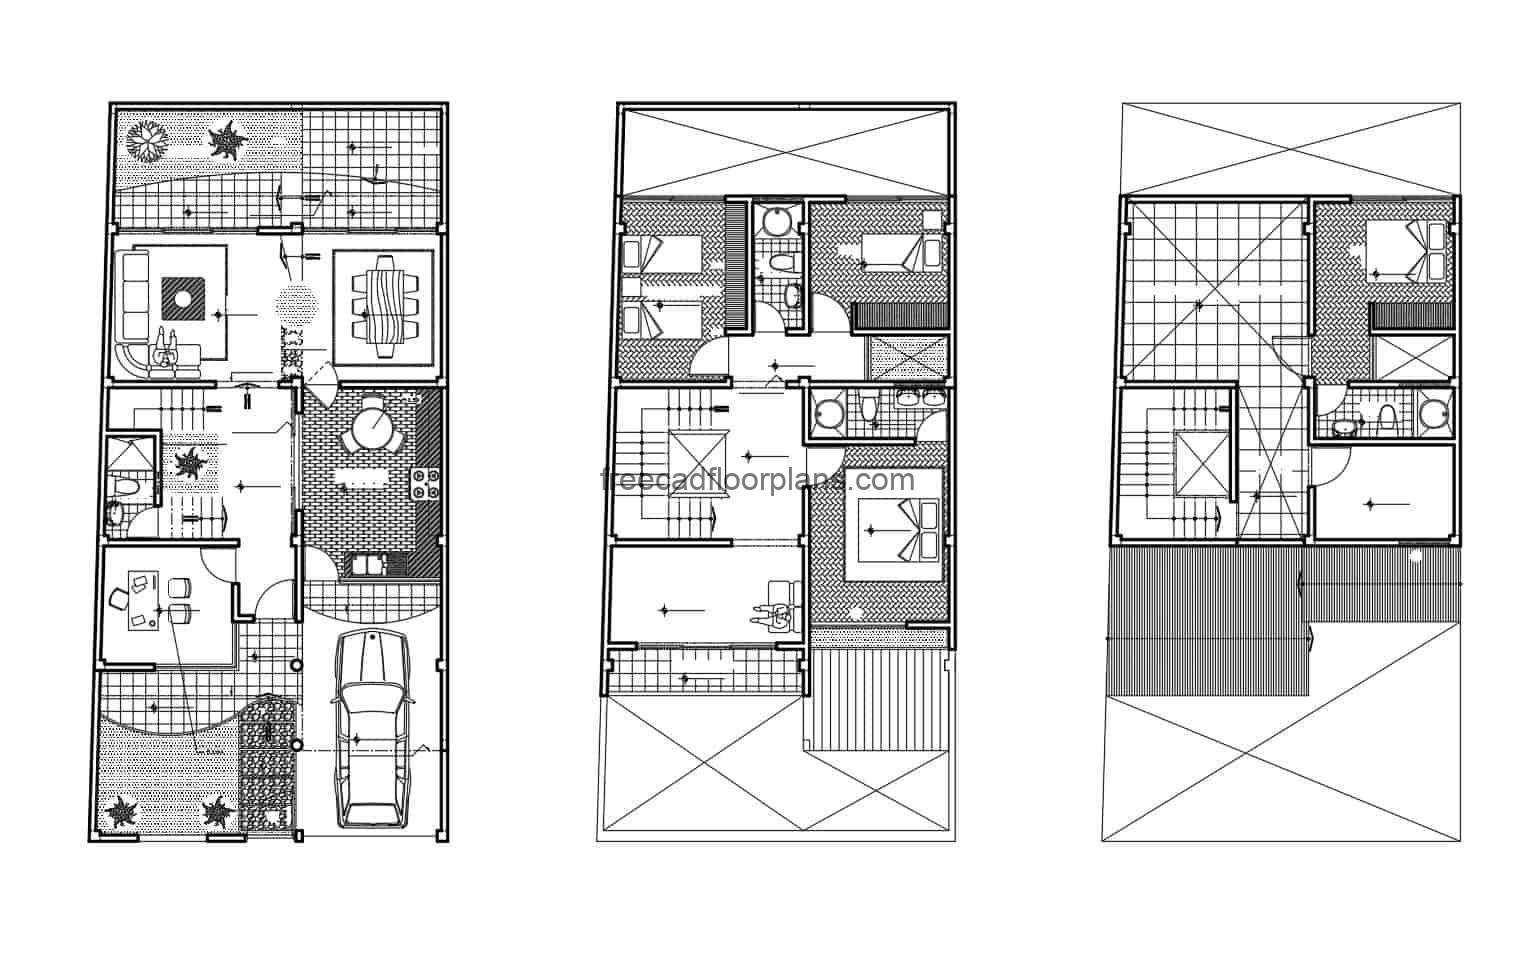 Plan in autocad for free download, three-level house with four rooms